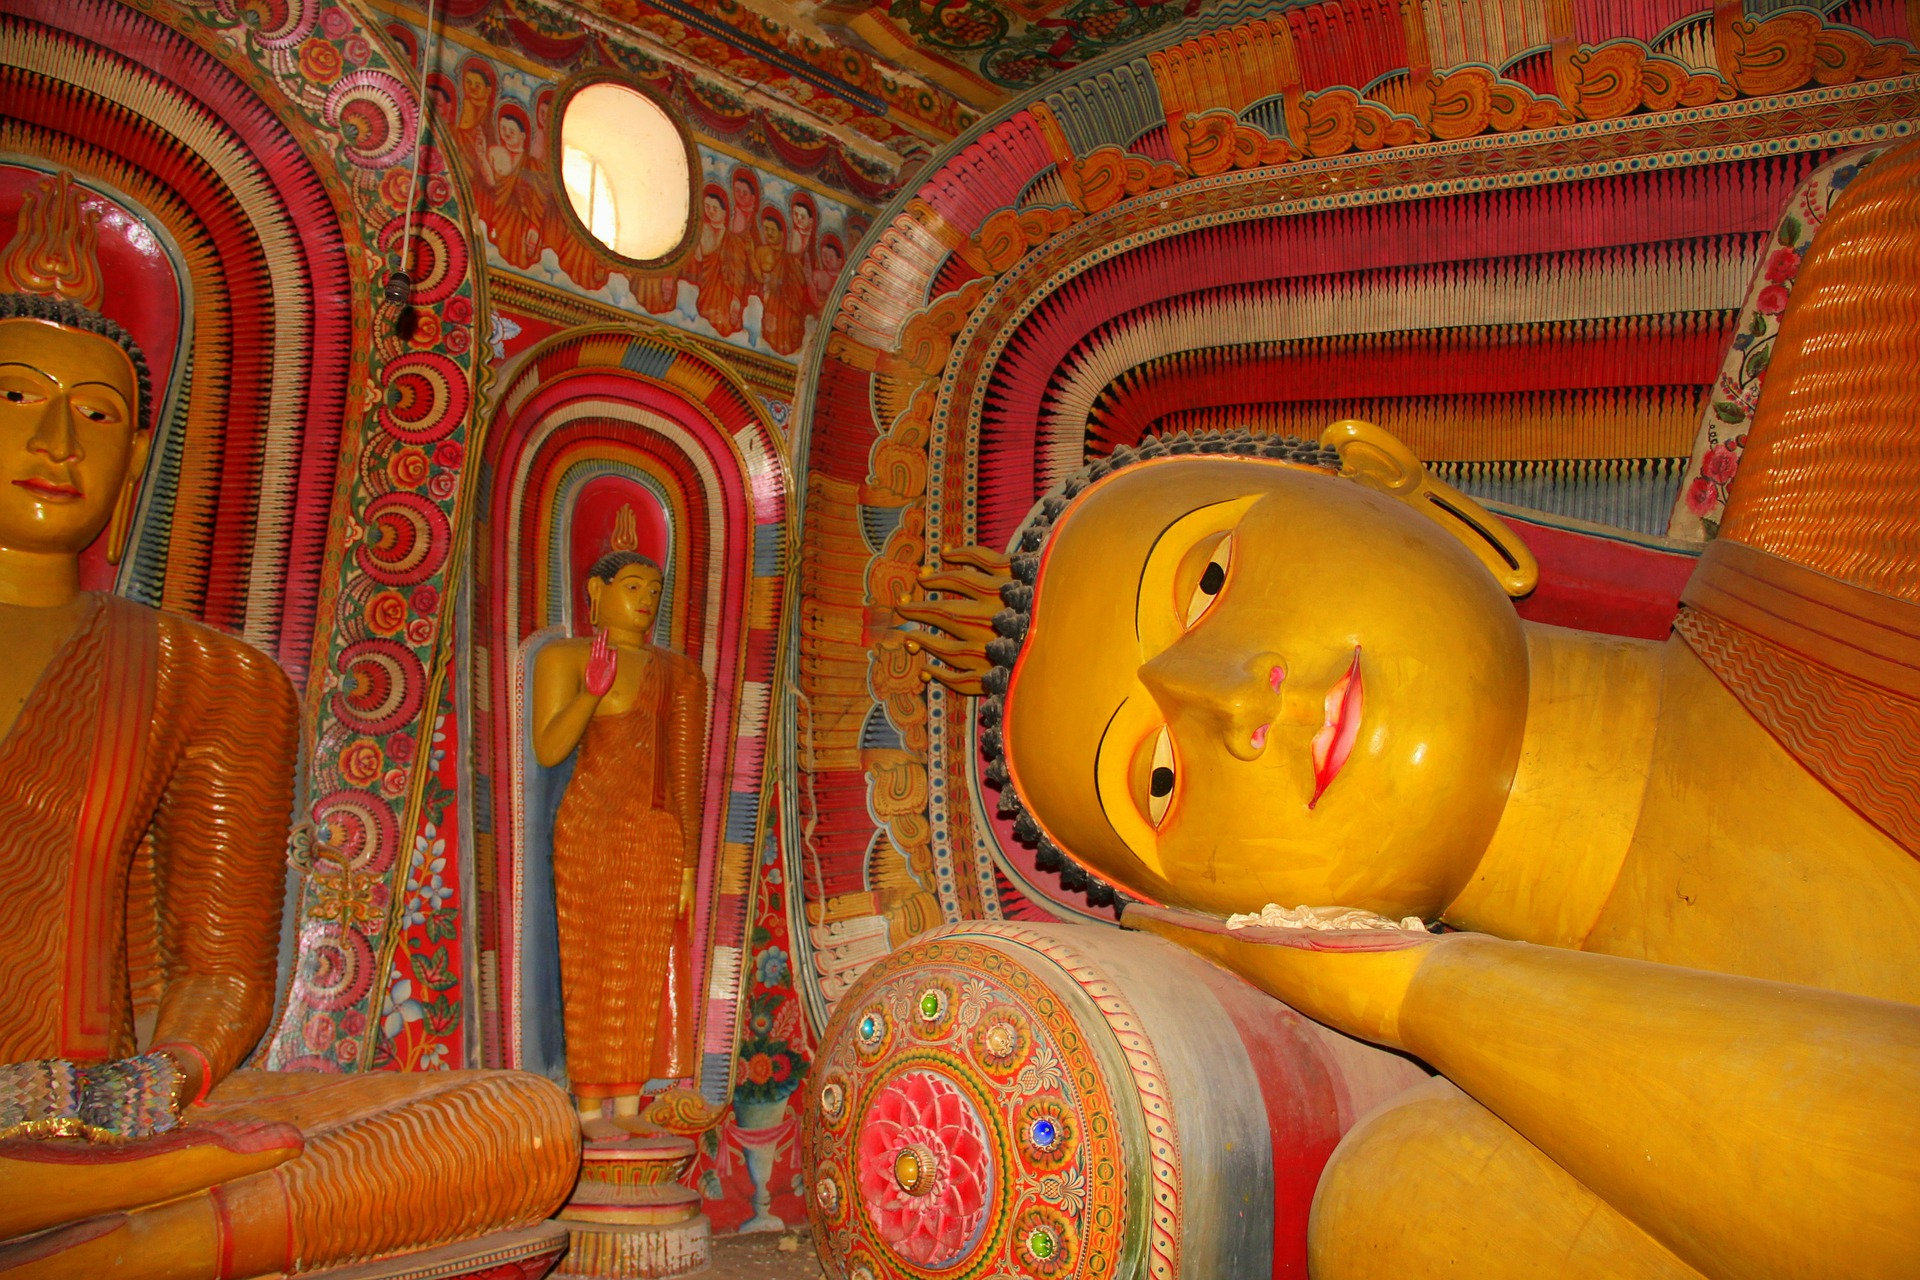 Sri Lanka - Sleeping Buddha Temple - pixabay